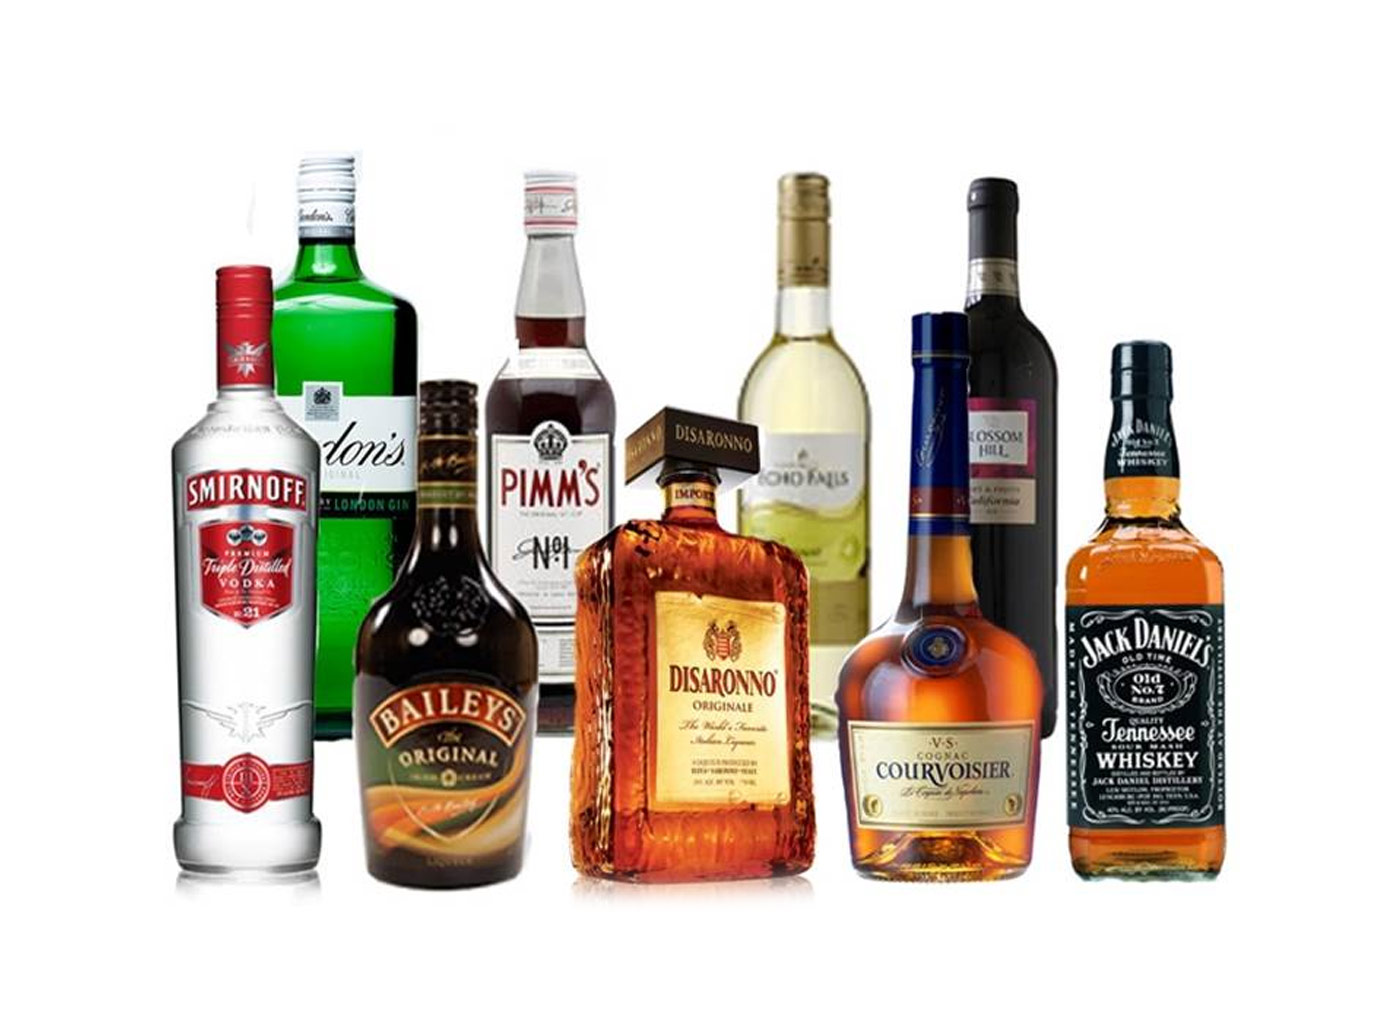 AMARO, GRAPPE, WHISKY